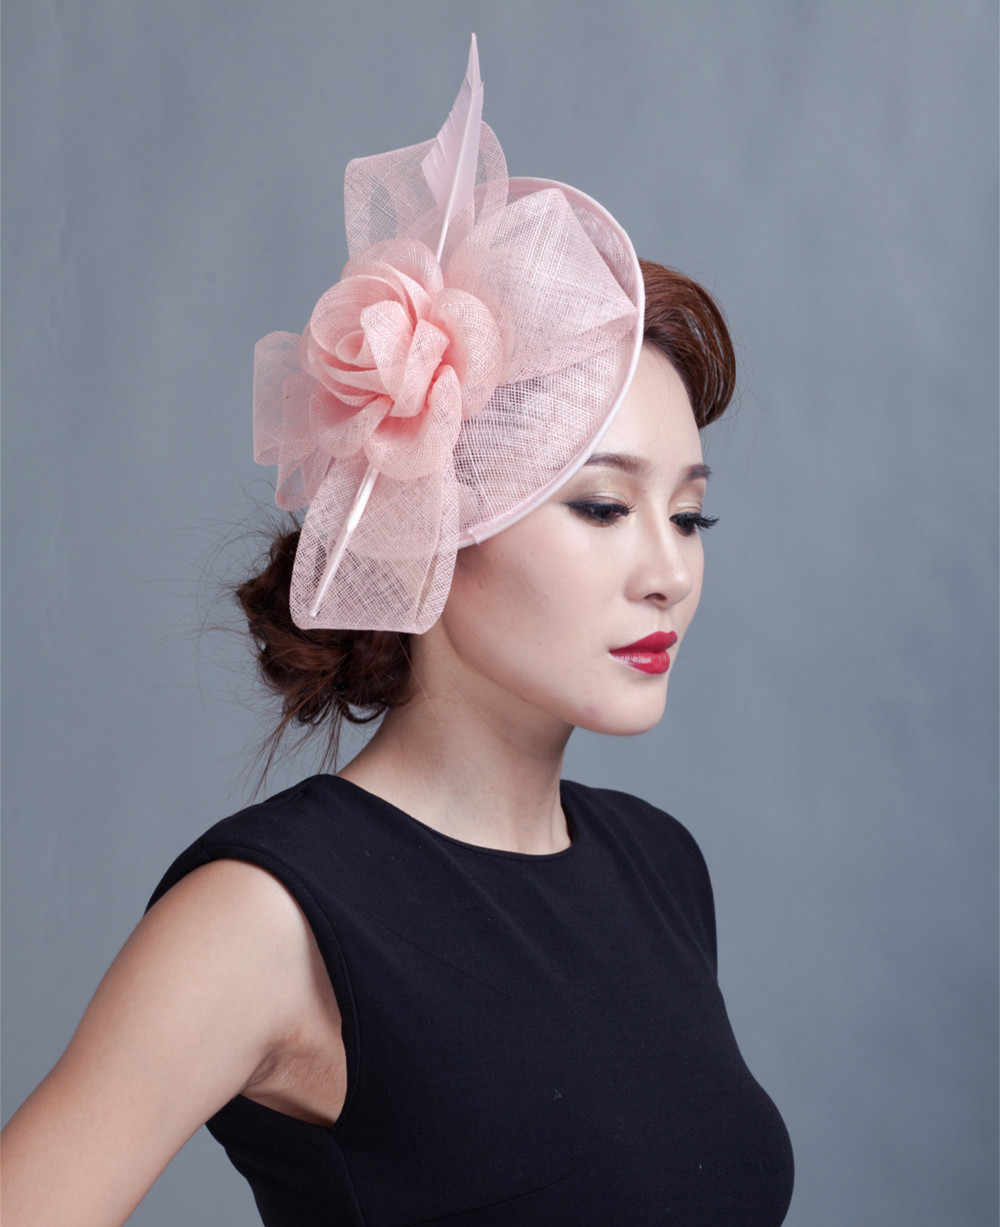 e625fce4 Korean British Style Ostrich Feather Sinamay Fascinator Wedding Hat For  Bride Big Flower Linen Party Hairband